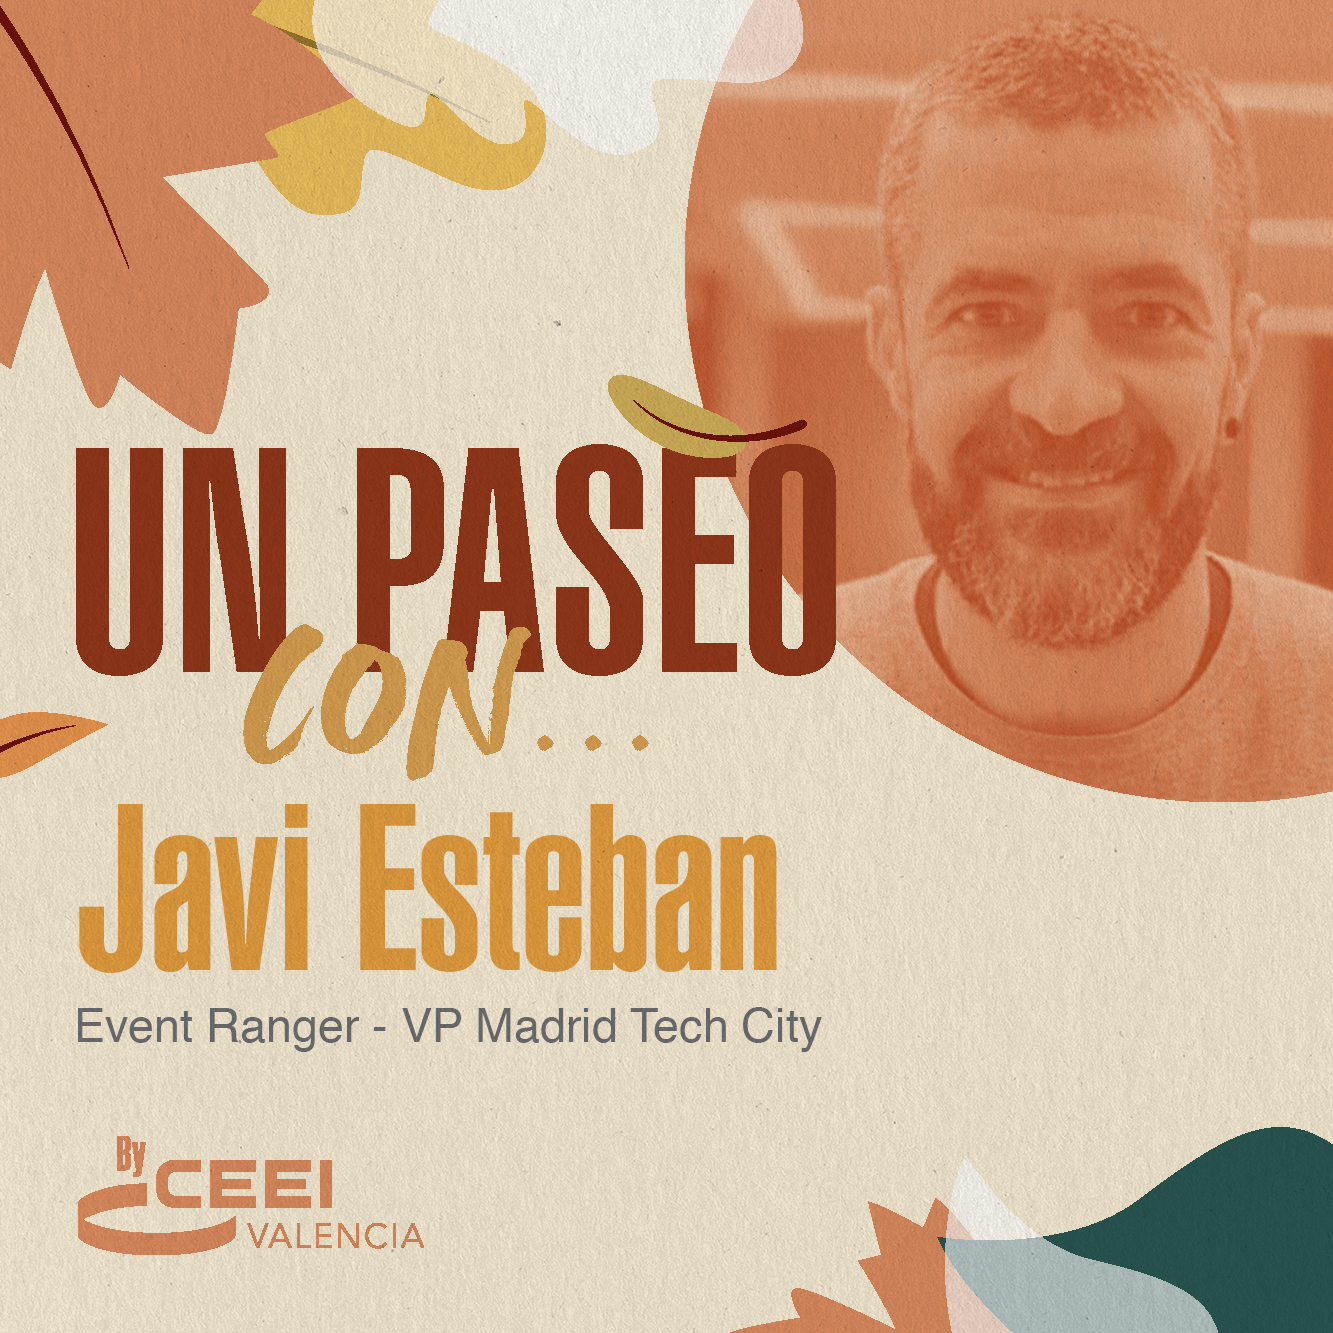 Un paseo con Javi Esteban Event Ranger - VP Madrid Tech City